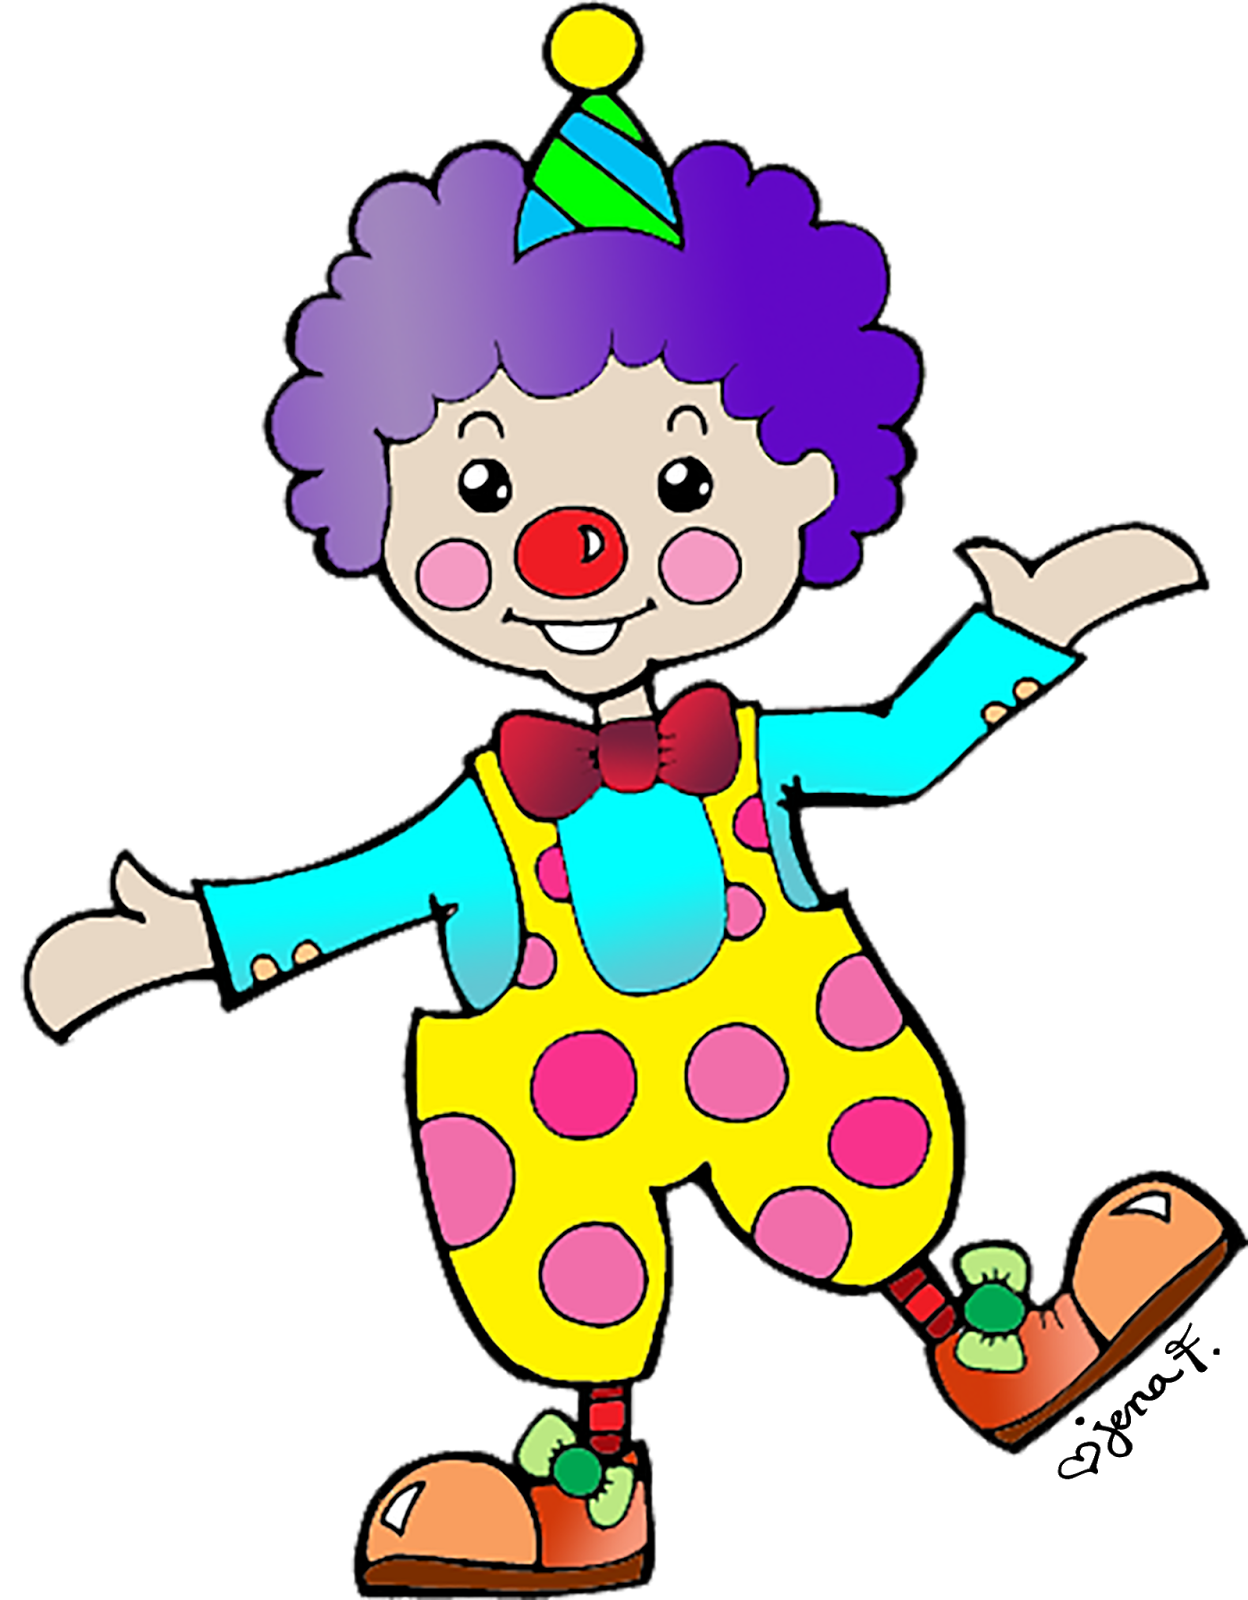 Clown clipart clown face. Aimless daze great clip